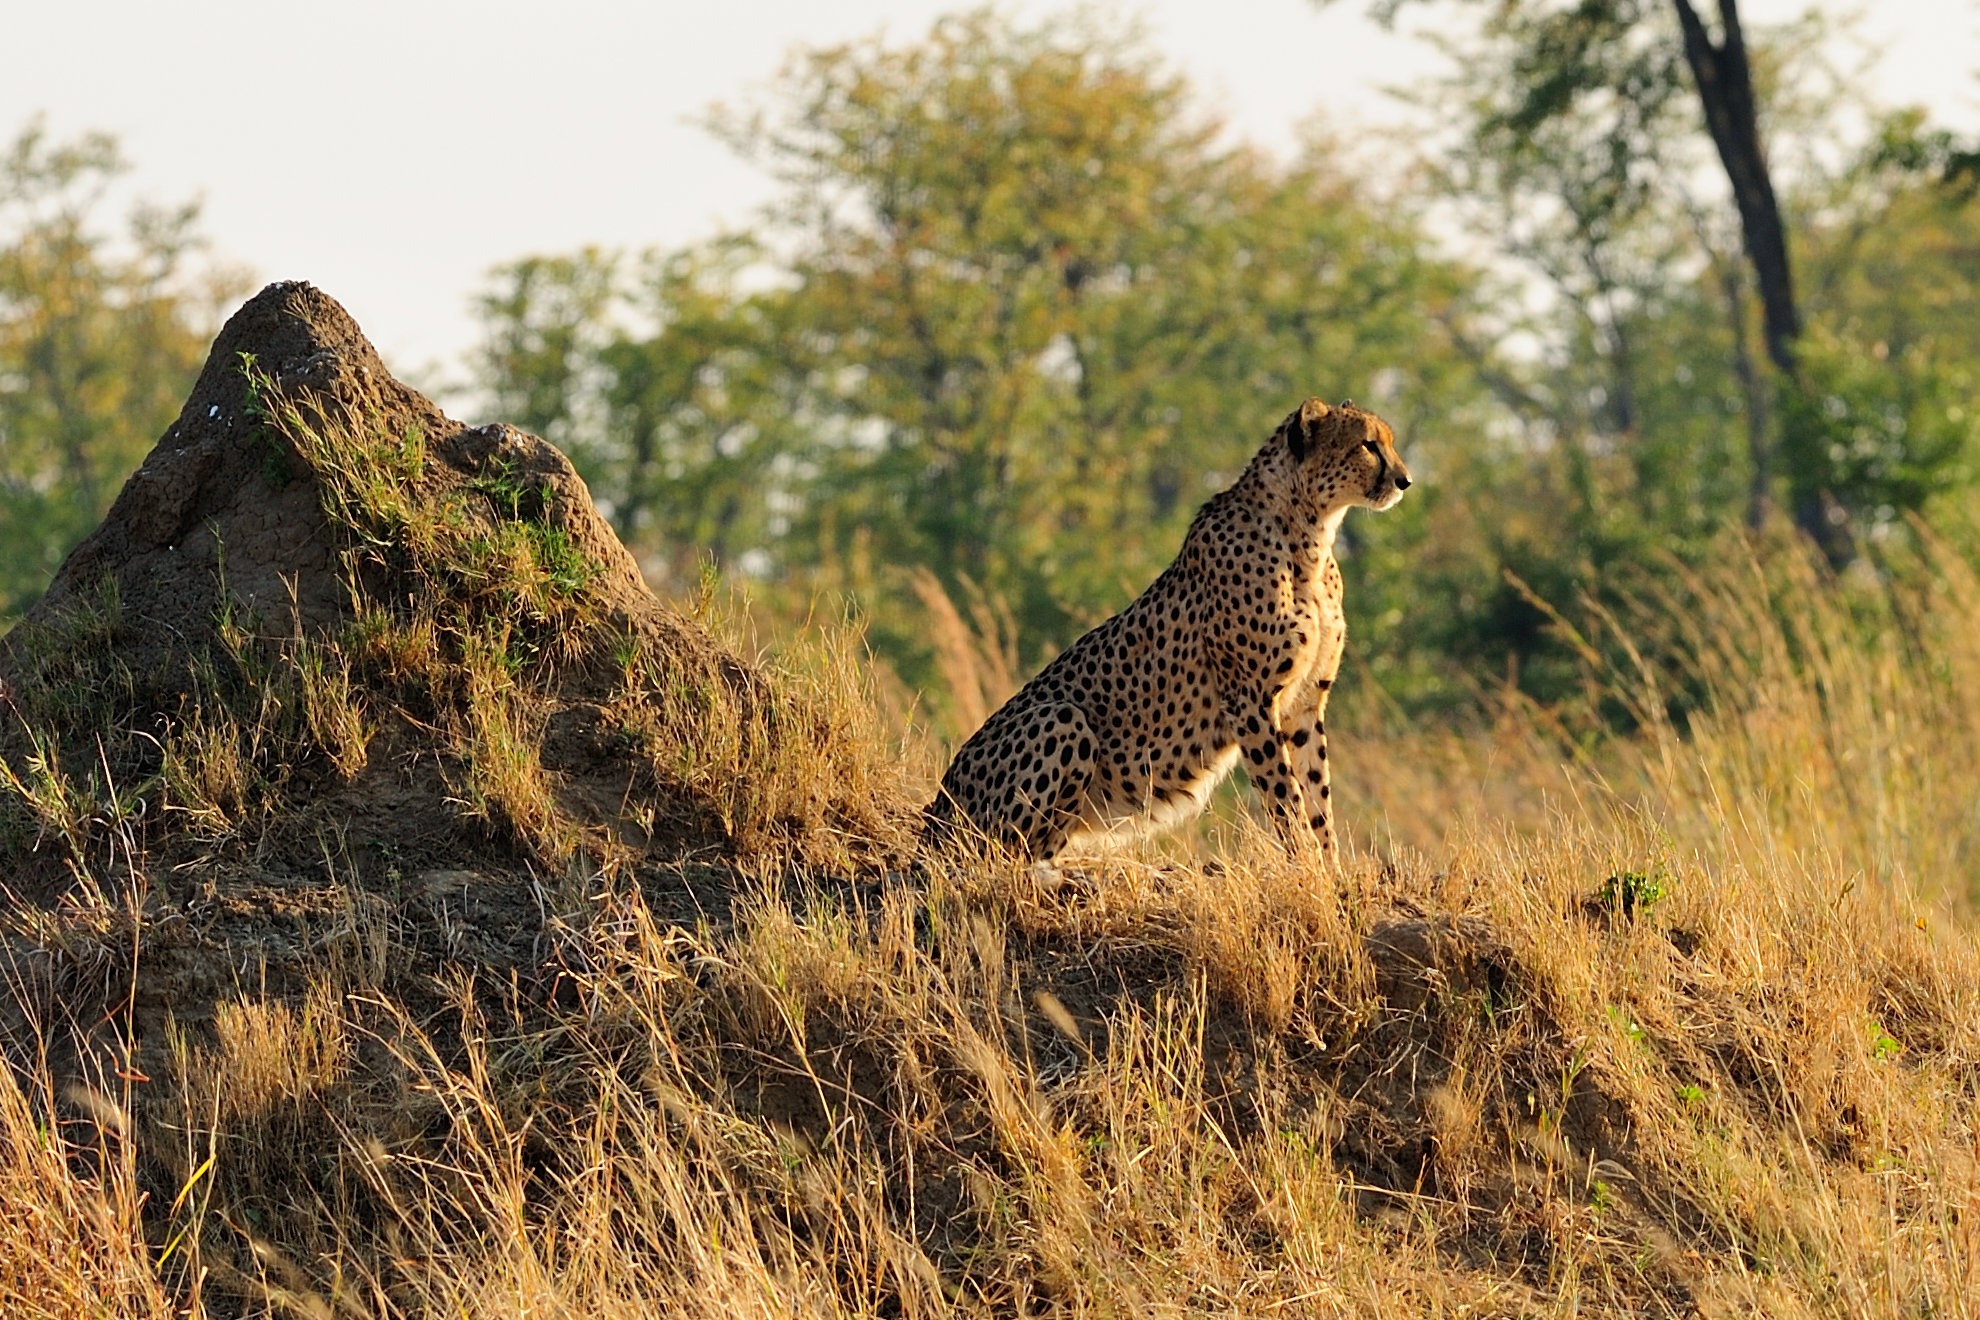 Sprinting cheetah abstract photo